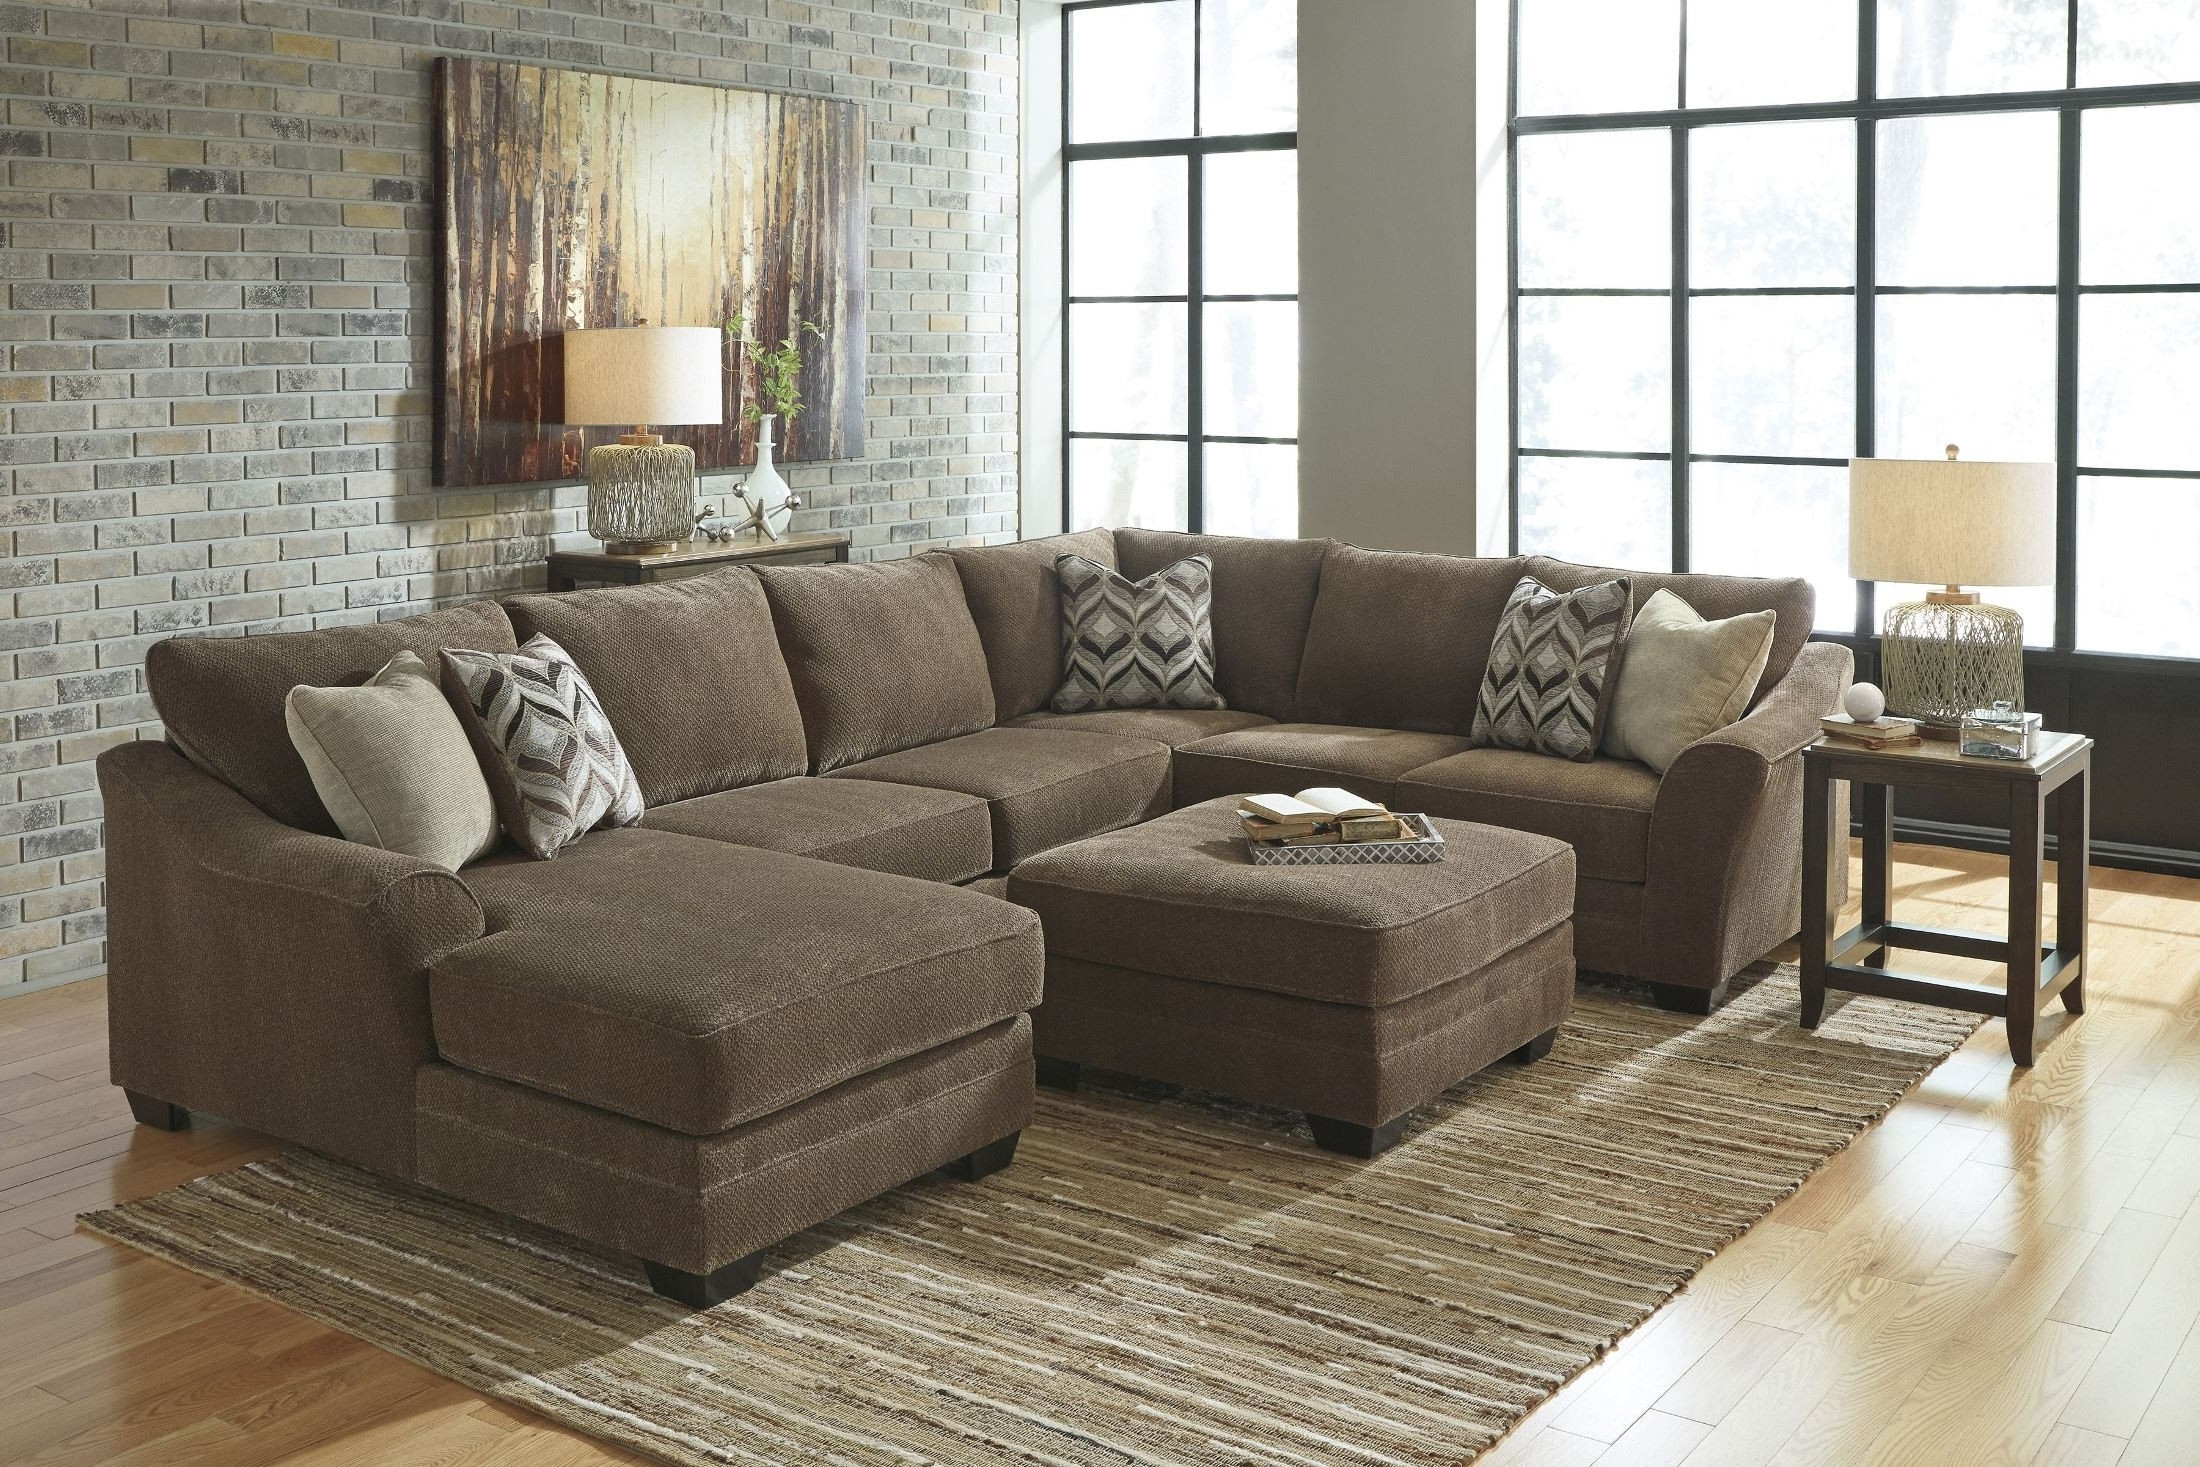 Sectional Couch For Sale (View 15 of 20)